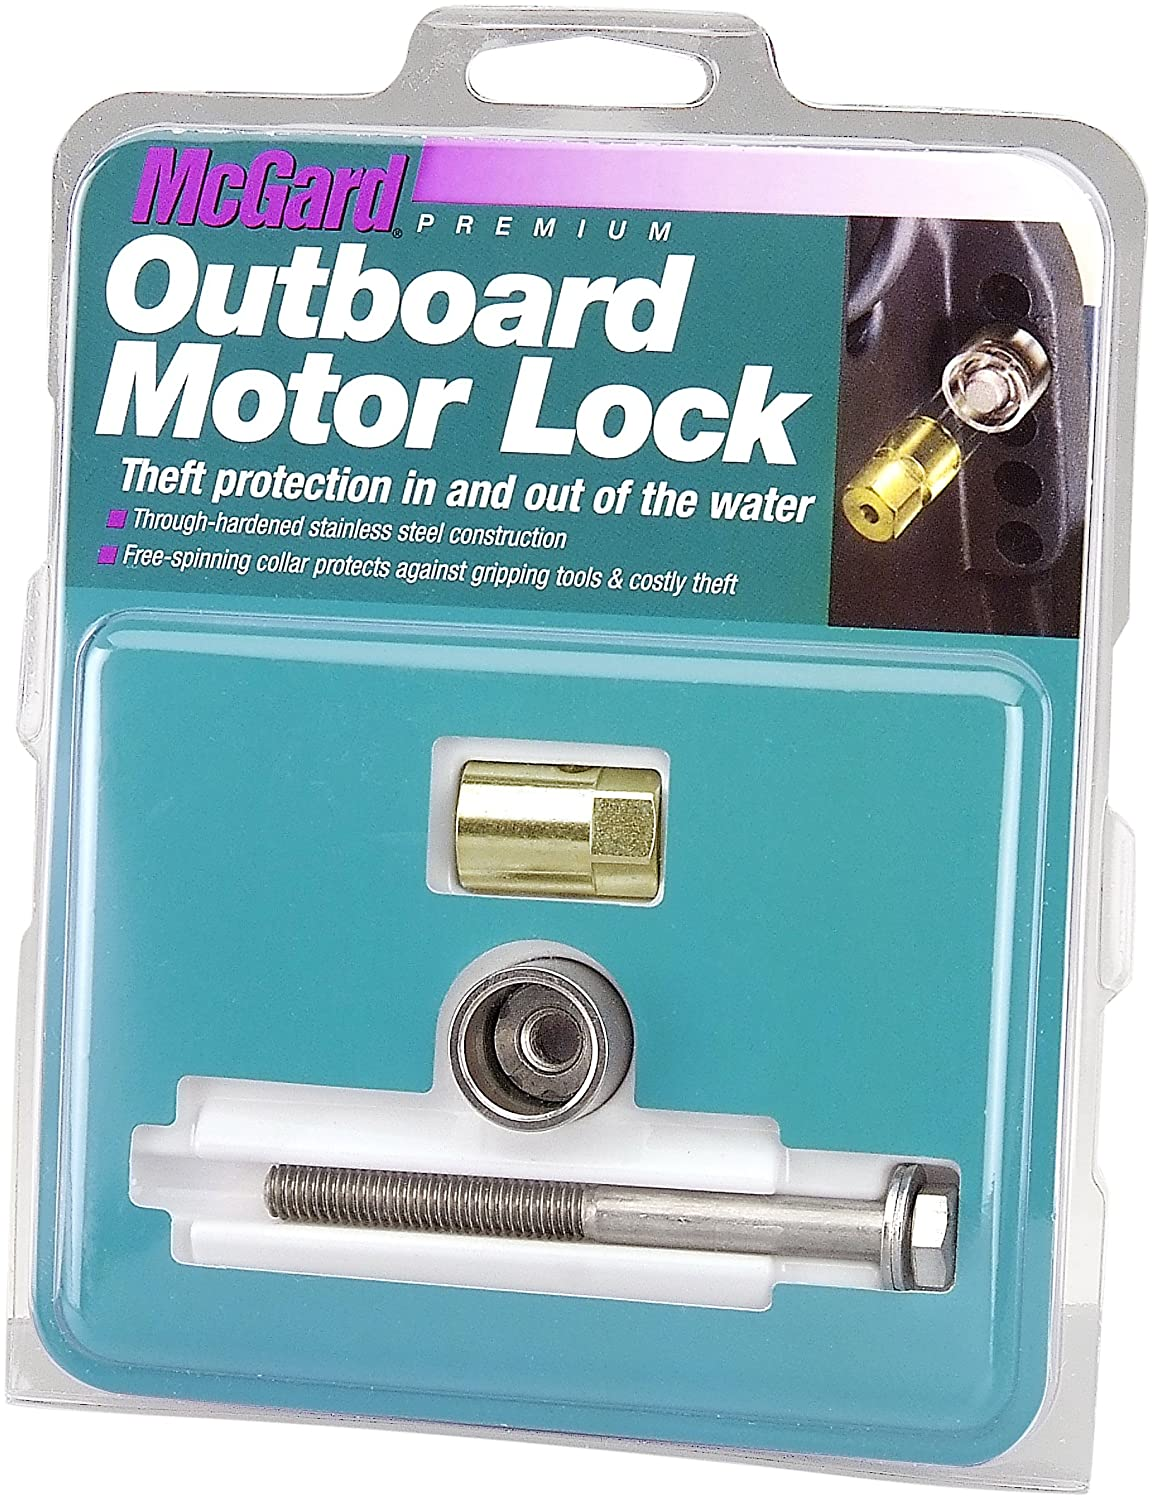 Set of 1 McGard 74049 Marine Single Outboard Motor Lock Set 5//16-18 Thread Size